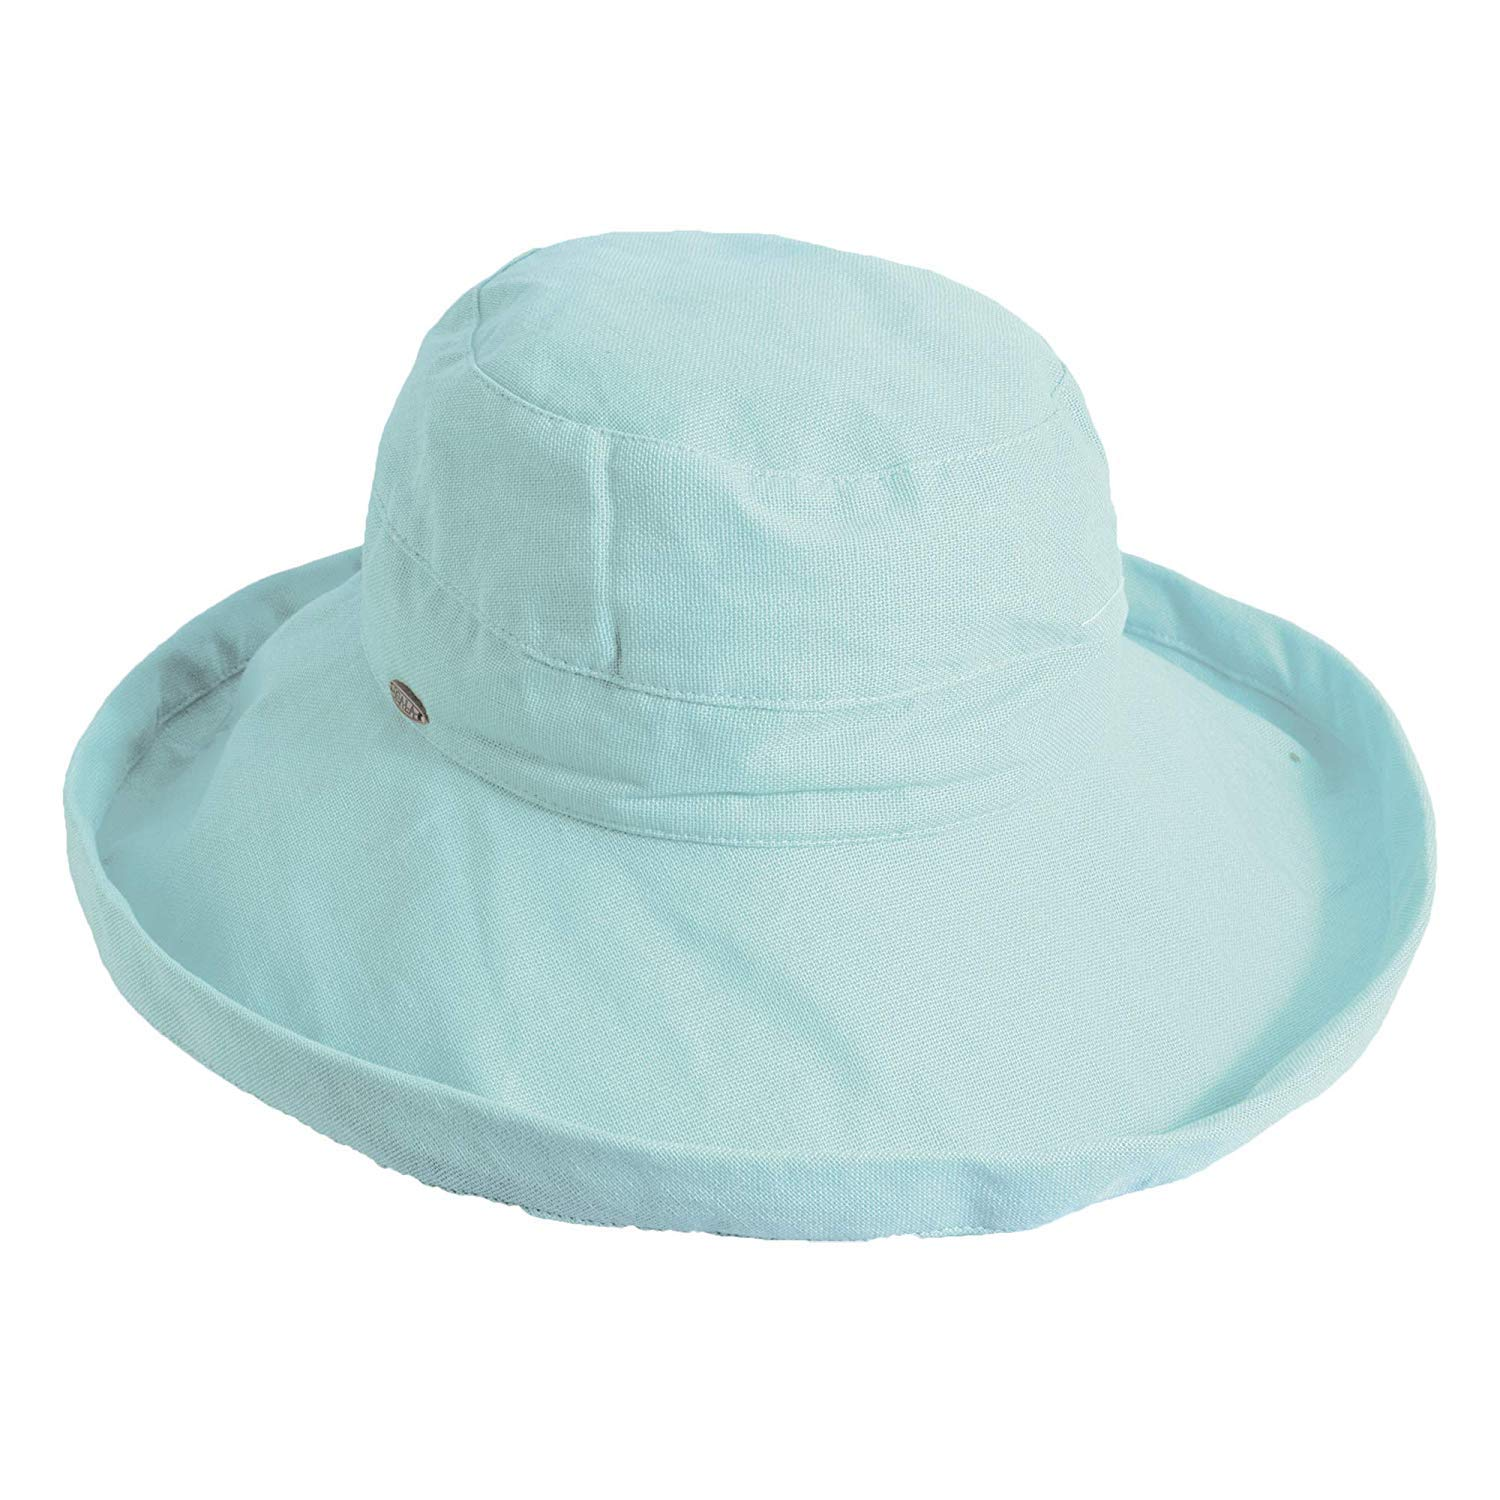 36960237dd5 Scala Women s Medium Brim Cotton Hat